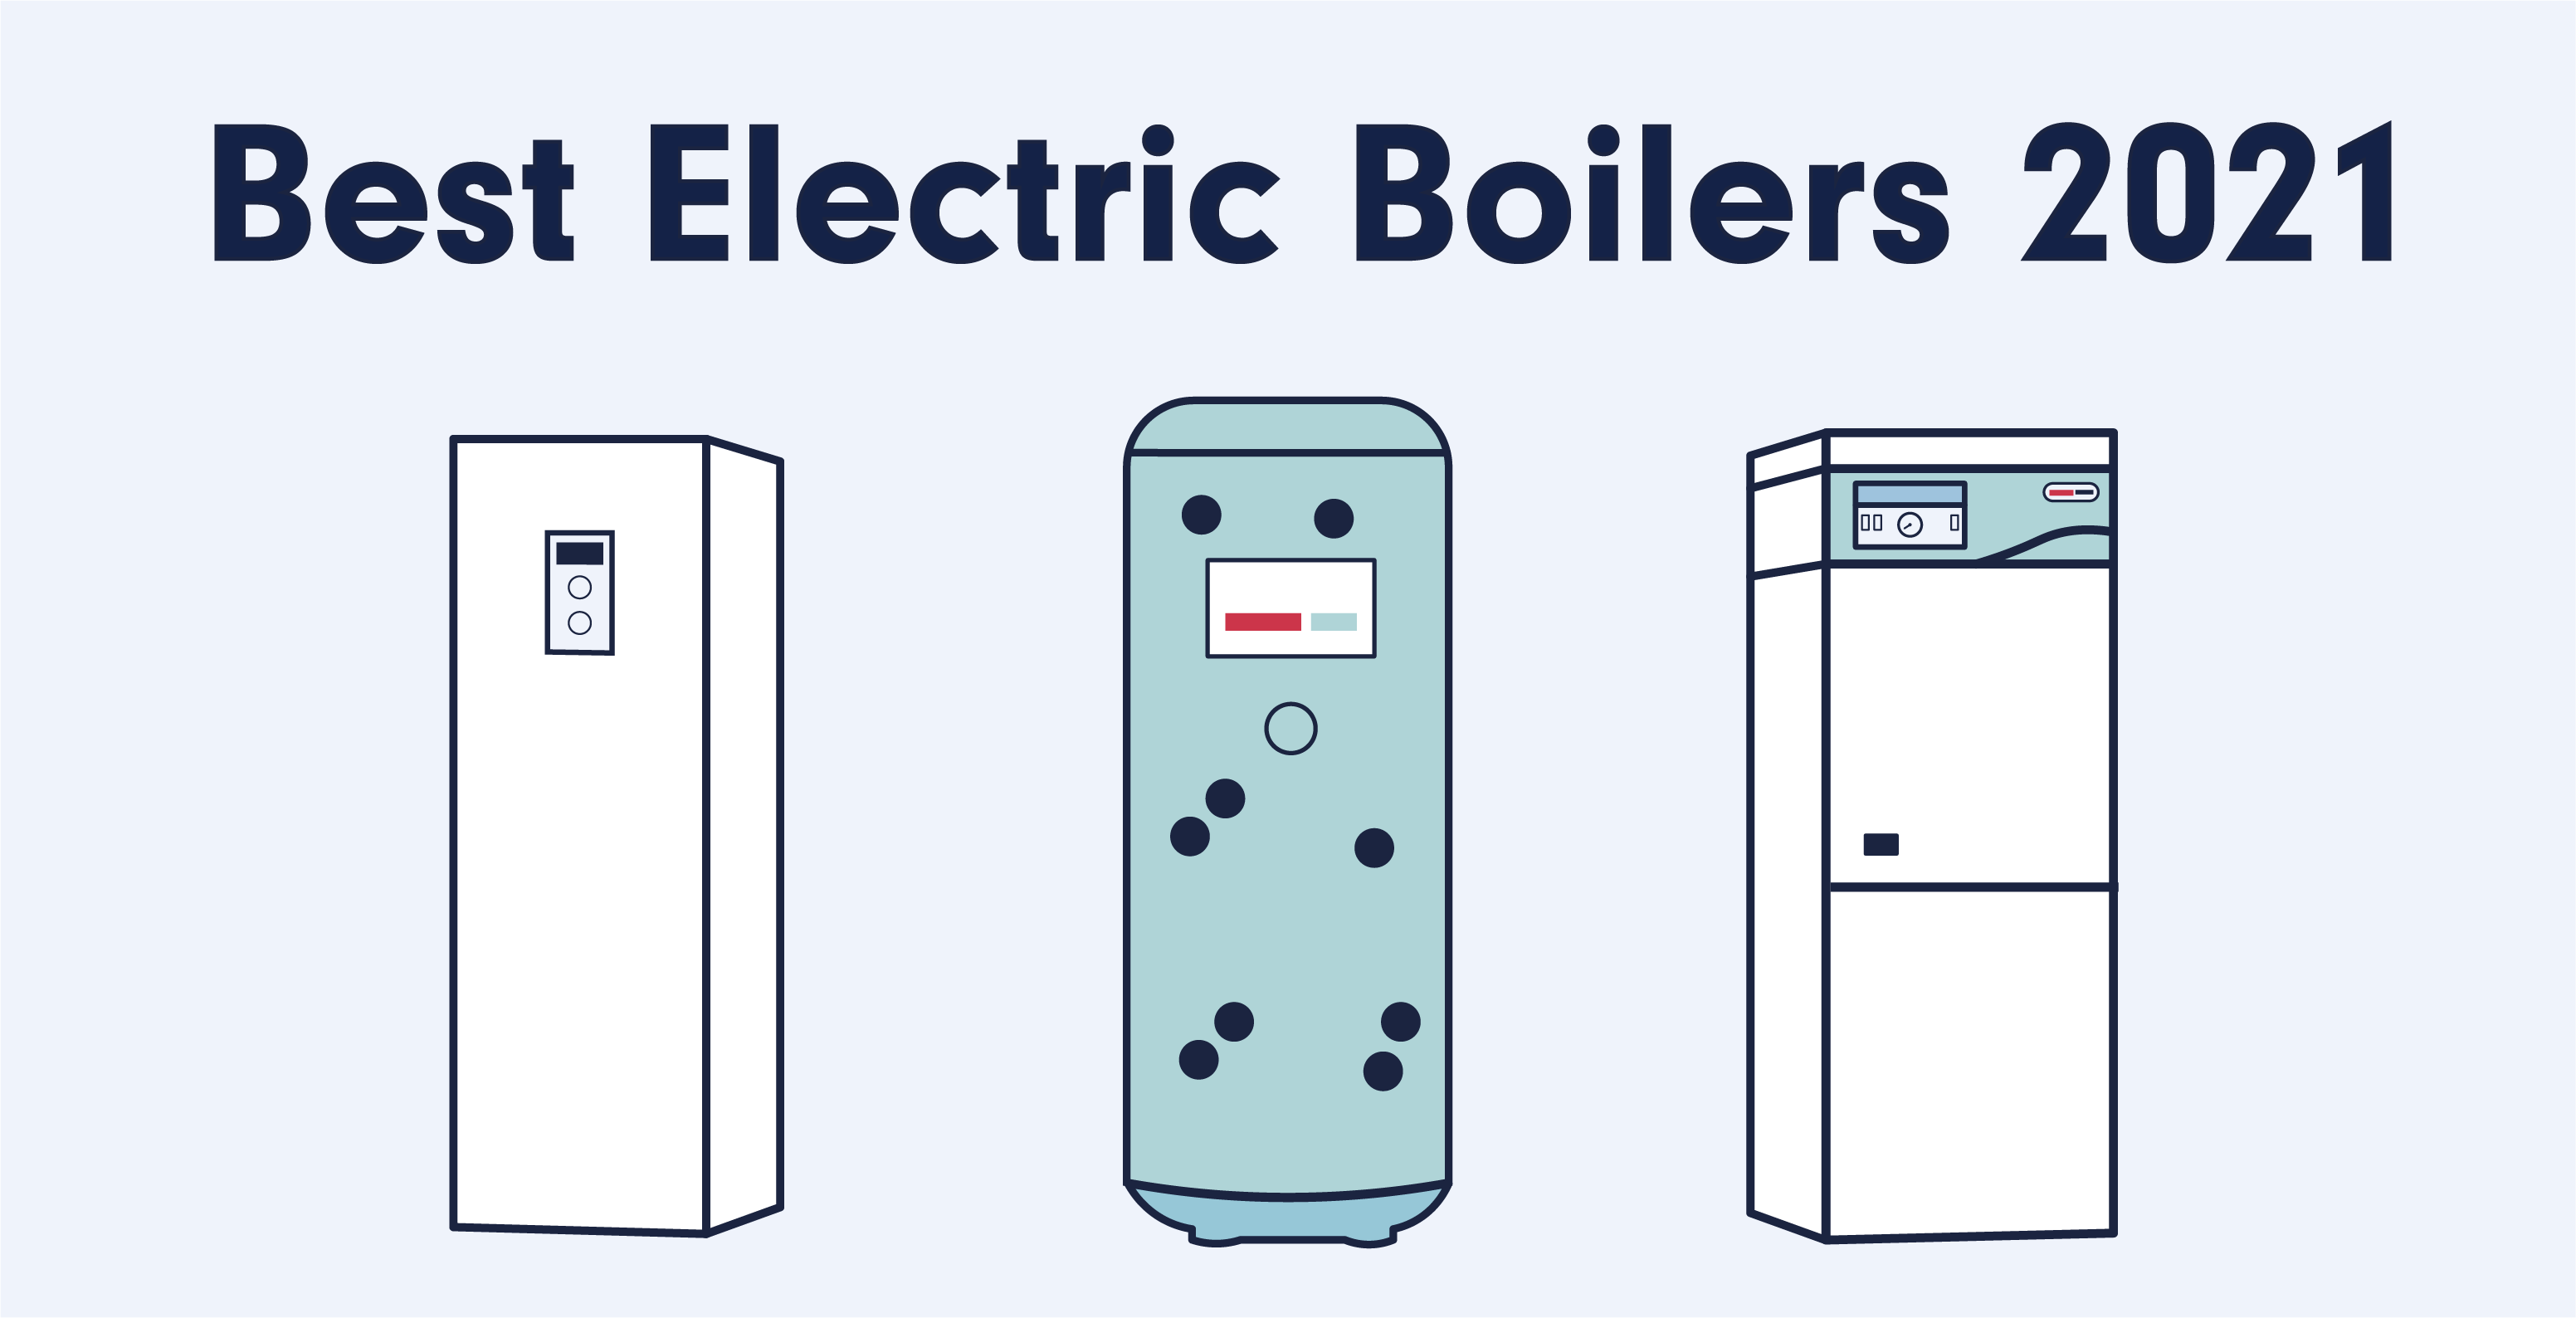 Best Electric Boilers 2021